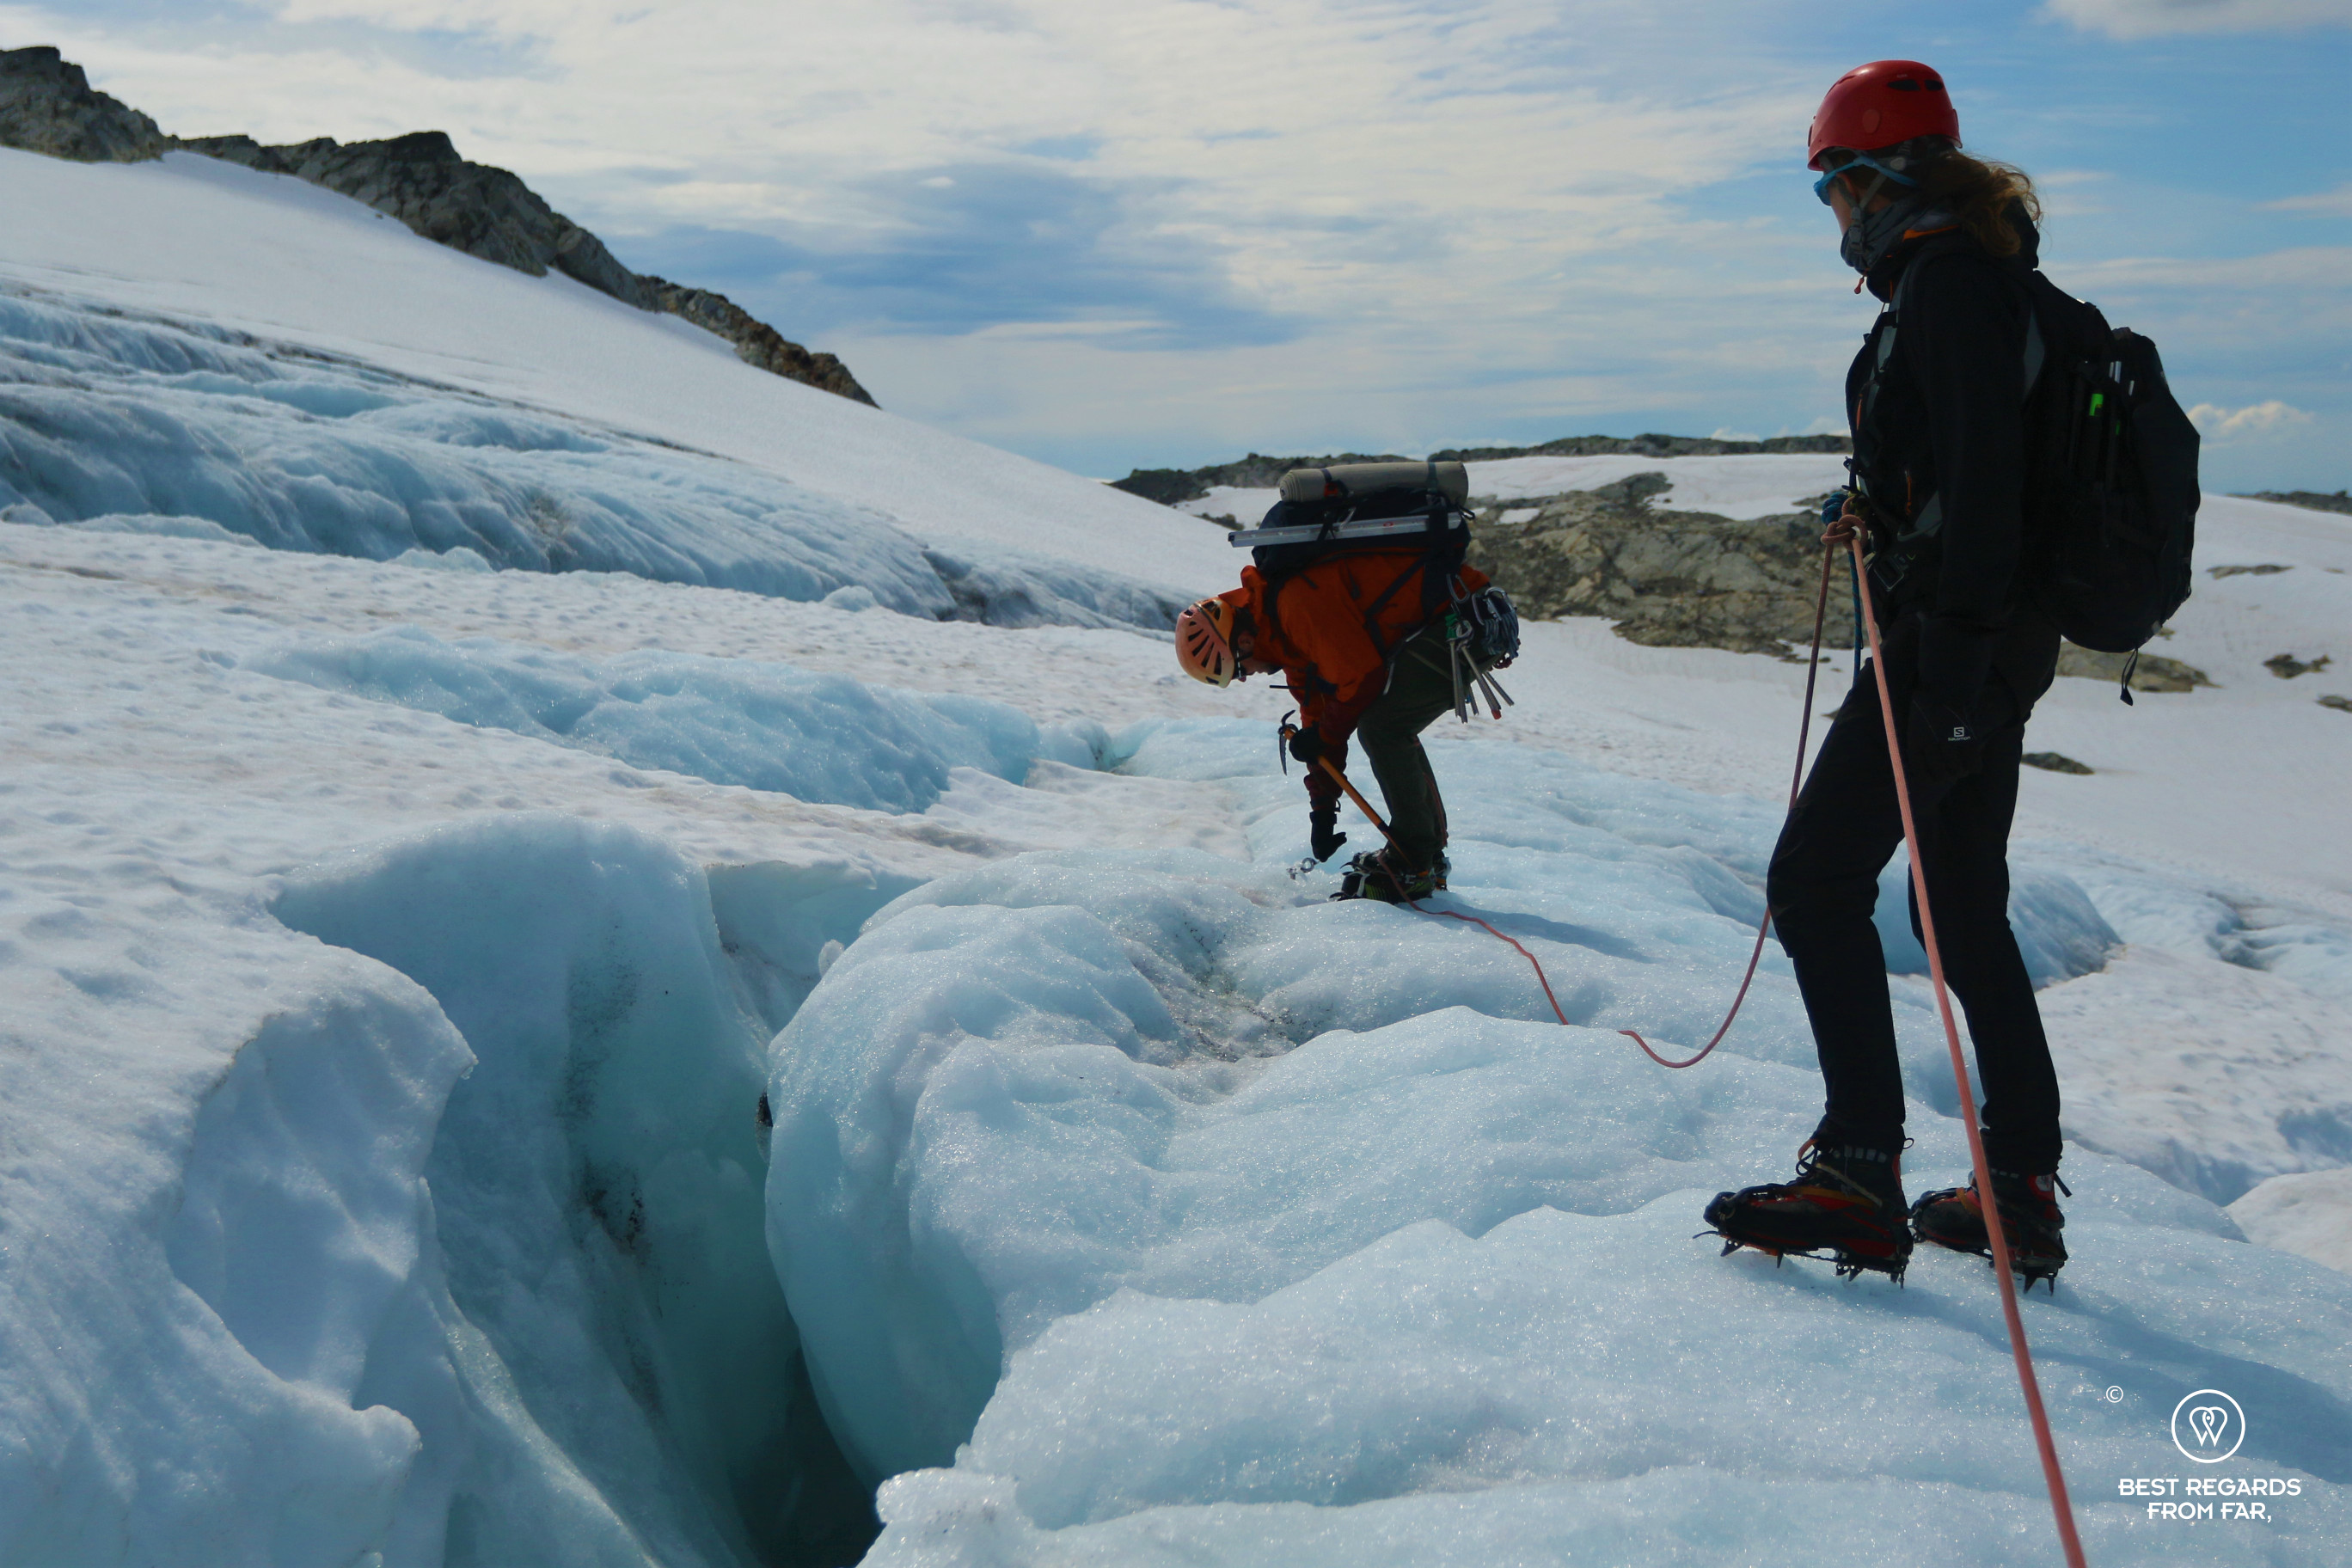 Author Marcella van Alphen progressing on the Fonna Glacier while the guide secures an ice screw